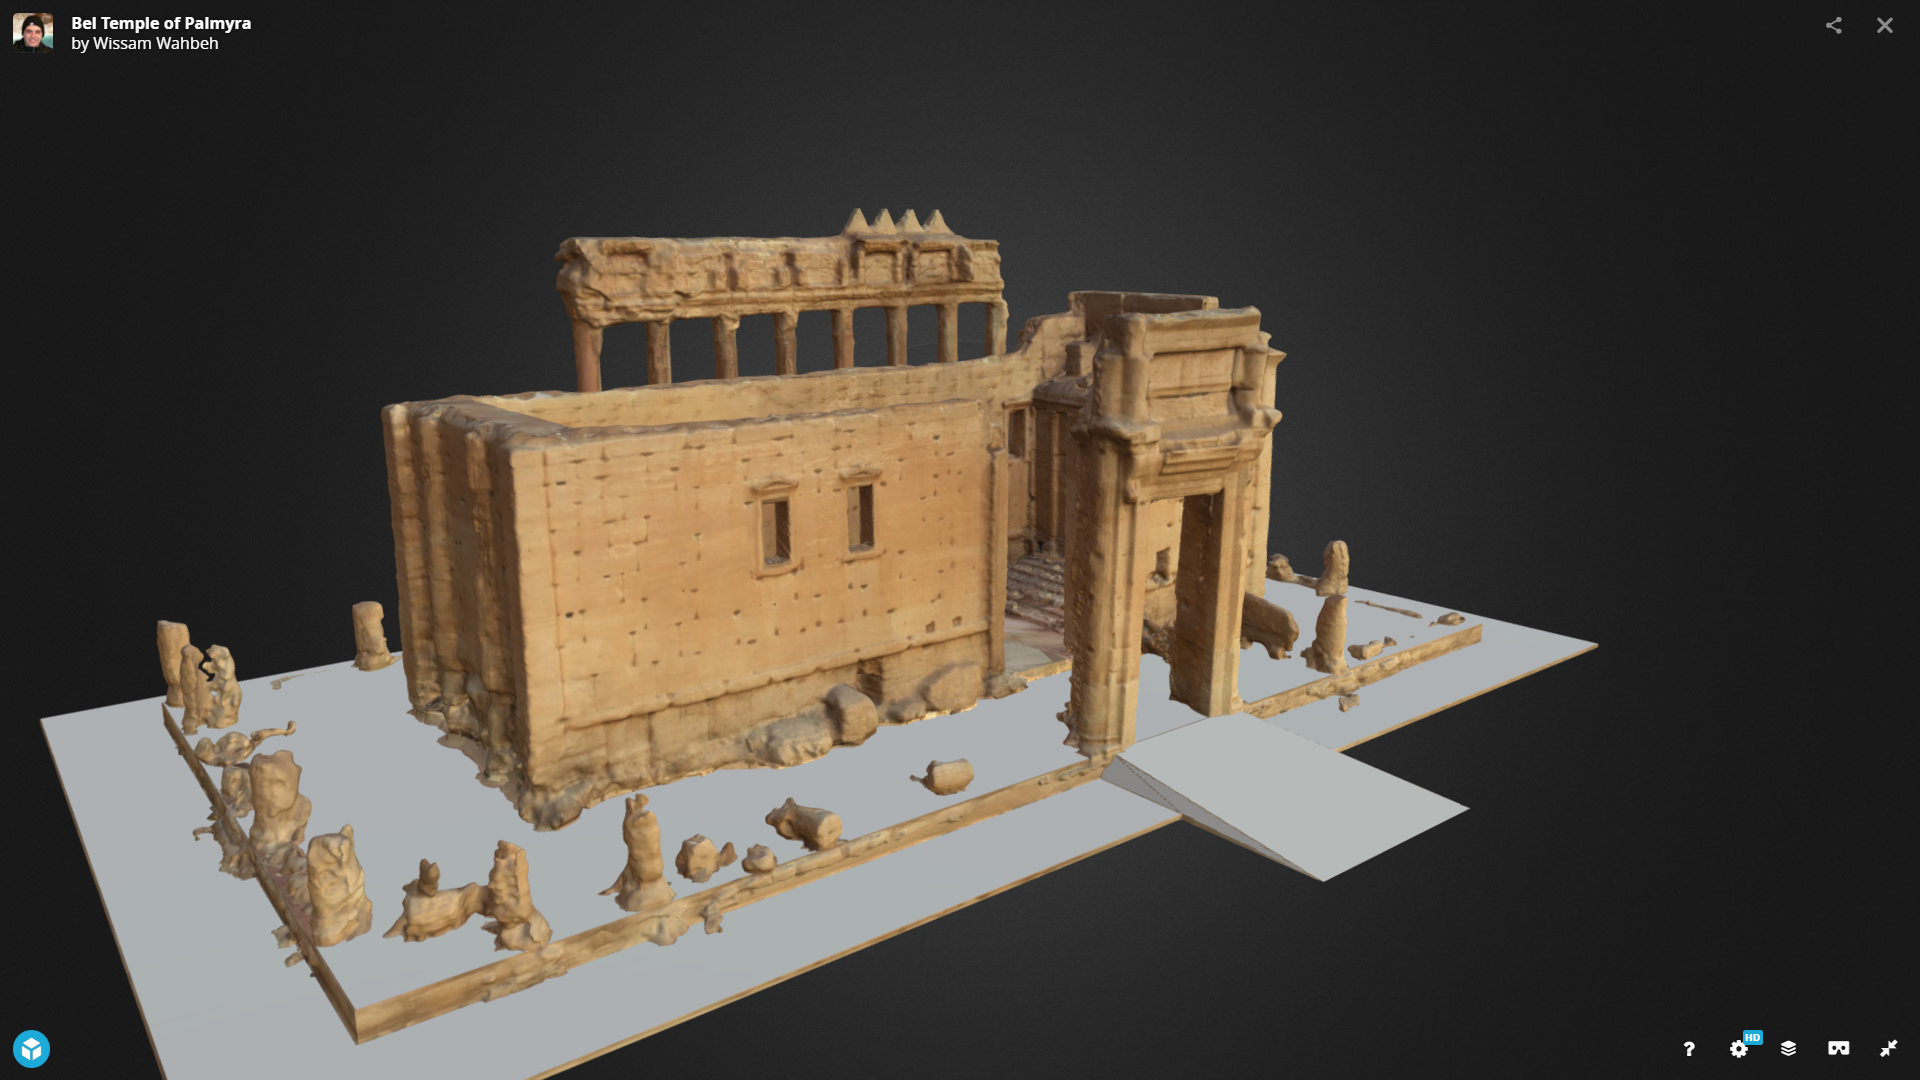 A 3D reconstruction of the Temple of Bel from Palmyra, which was destroyed by the Islamic State in 2015. From within the Rekrei website, users can choose to view all the images in VR - meaning they can freely navigate through 360 degrees of an object, artwork or piece of architecture like this - in a way that has never been done before.